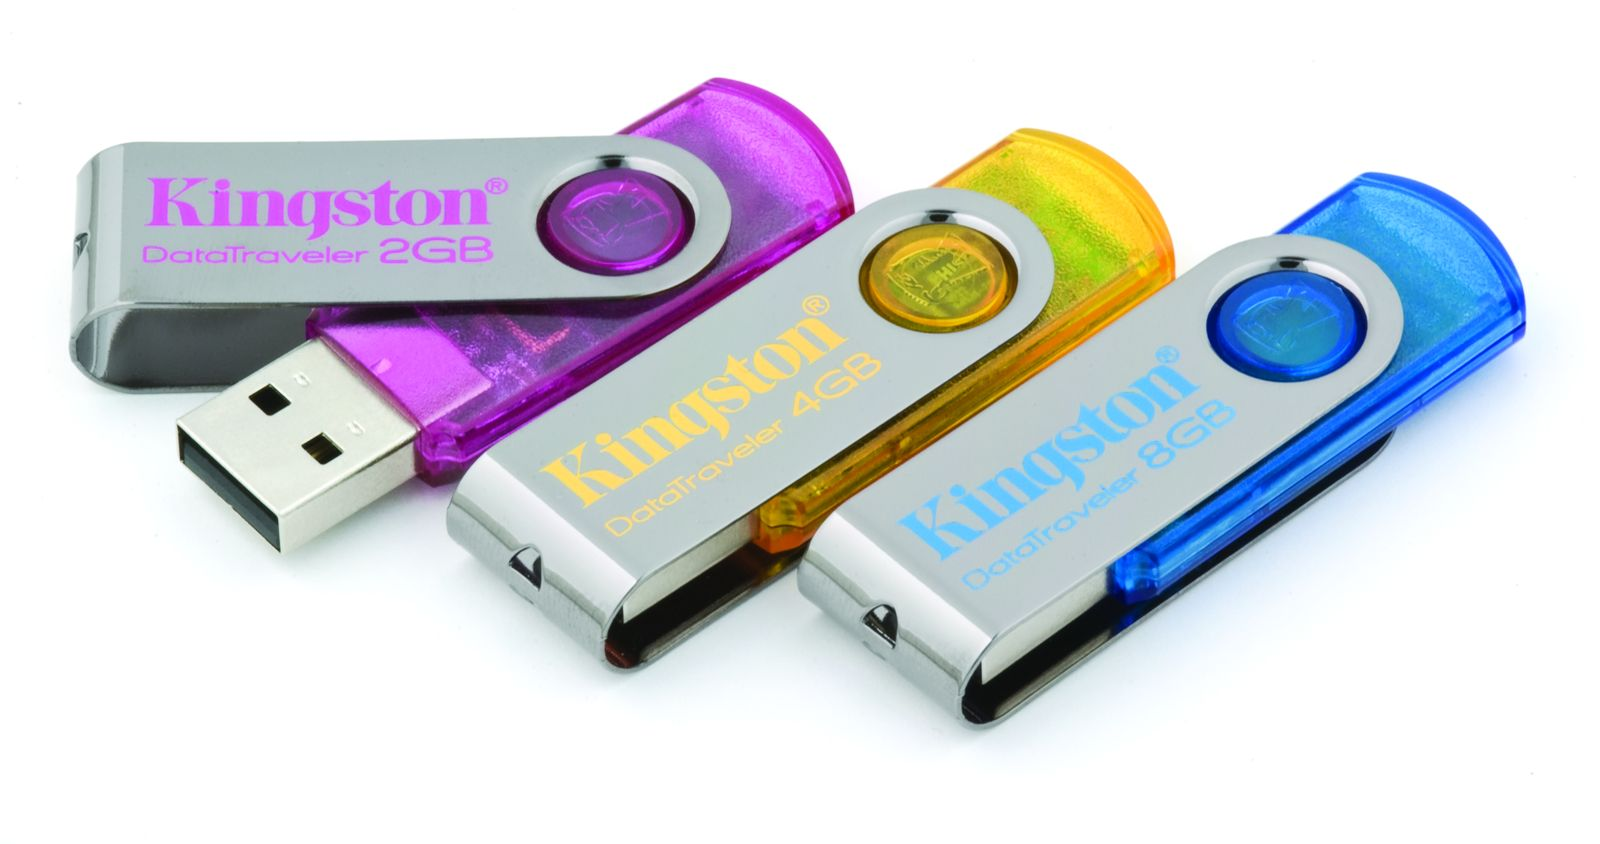 Credit Card USB Flash Drives.